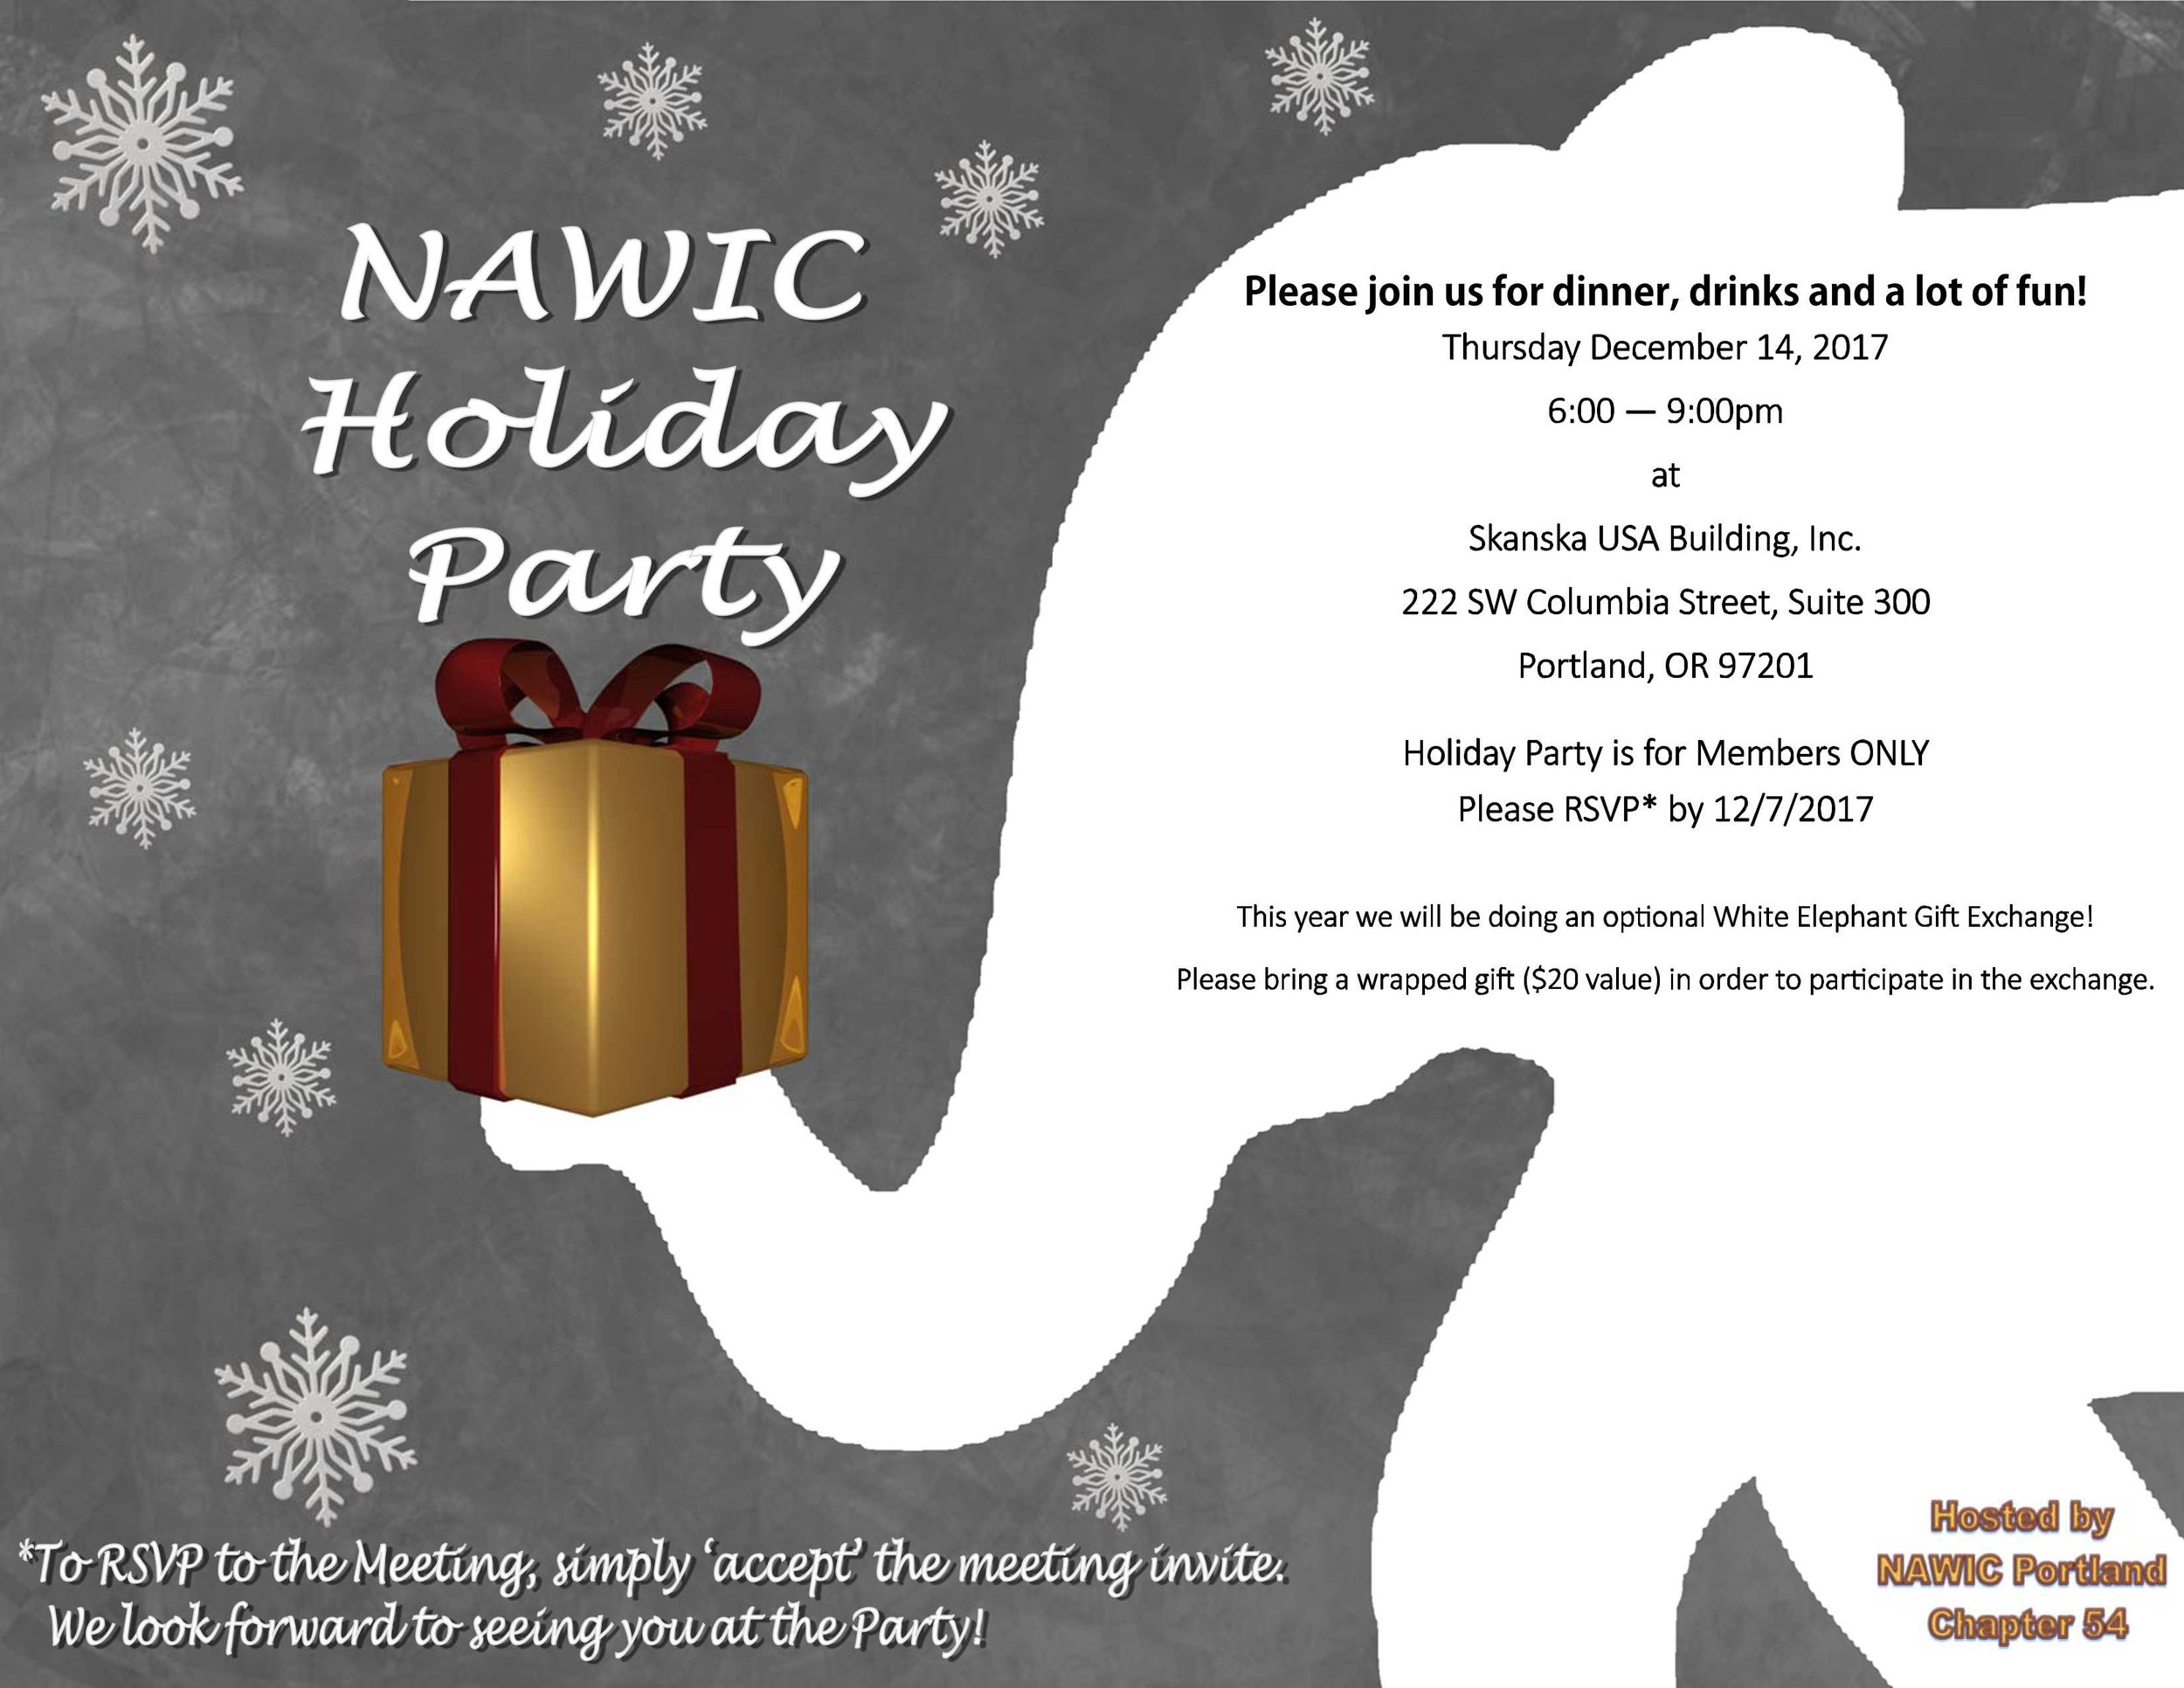 NAWIC Holiday Party Flyer 12.14.17.jpg